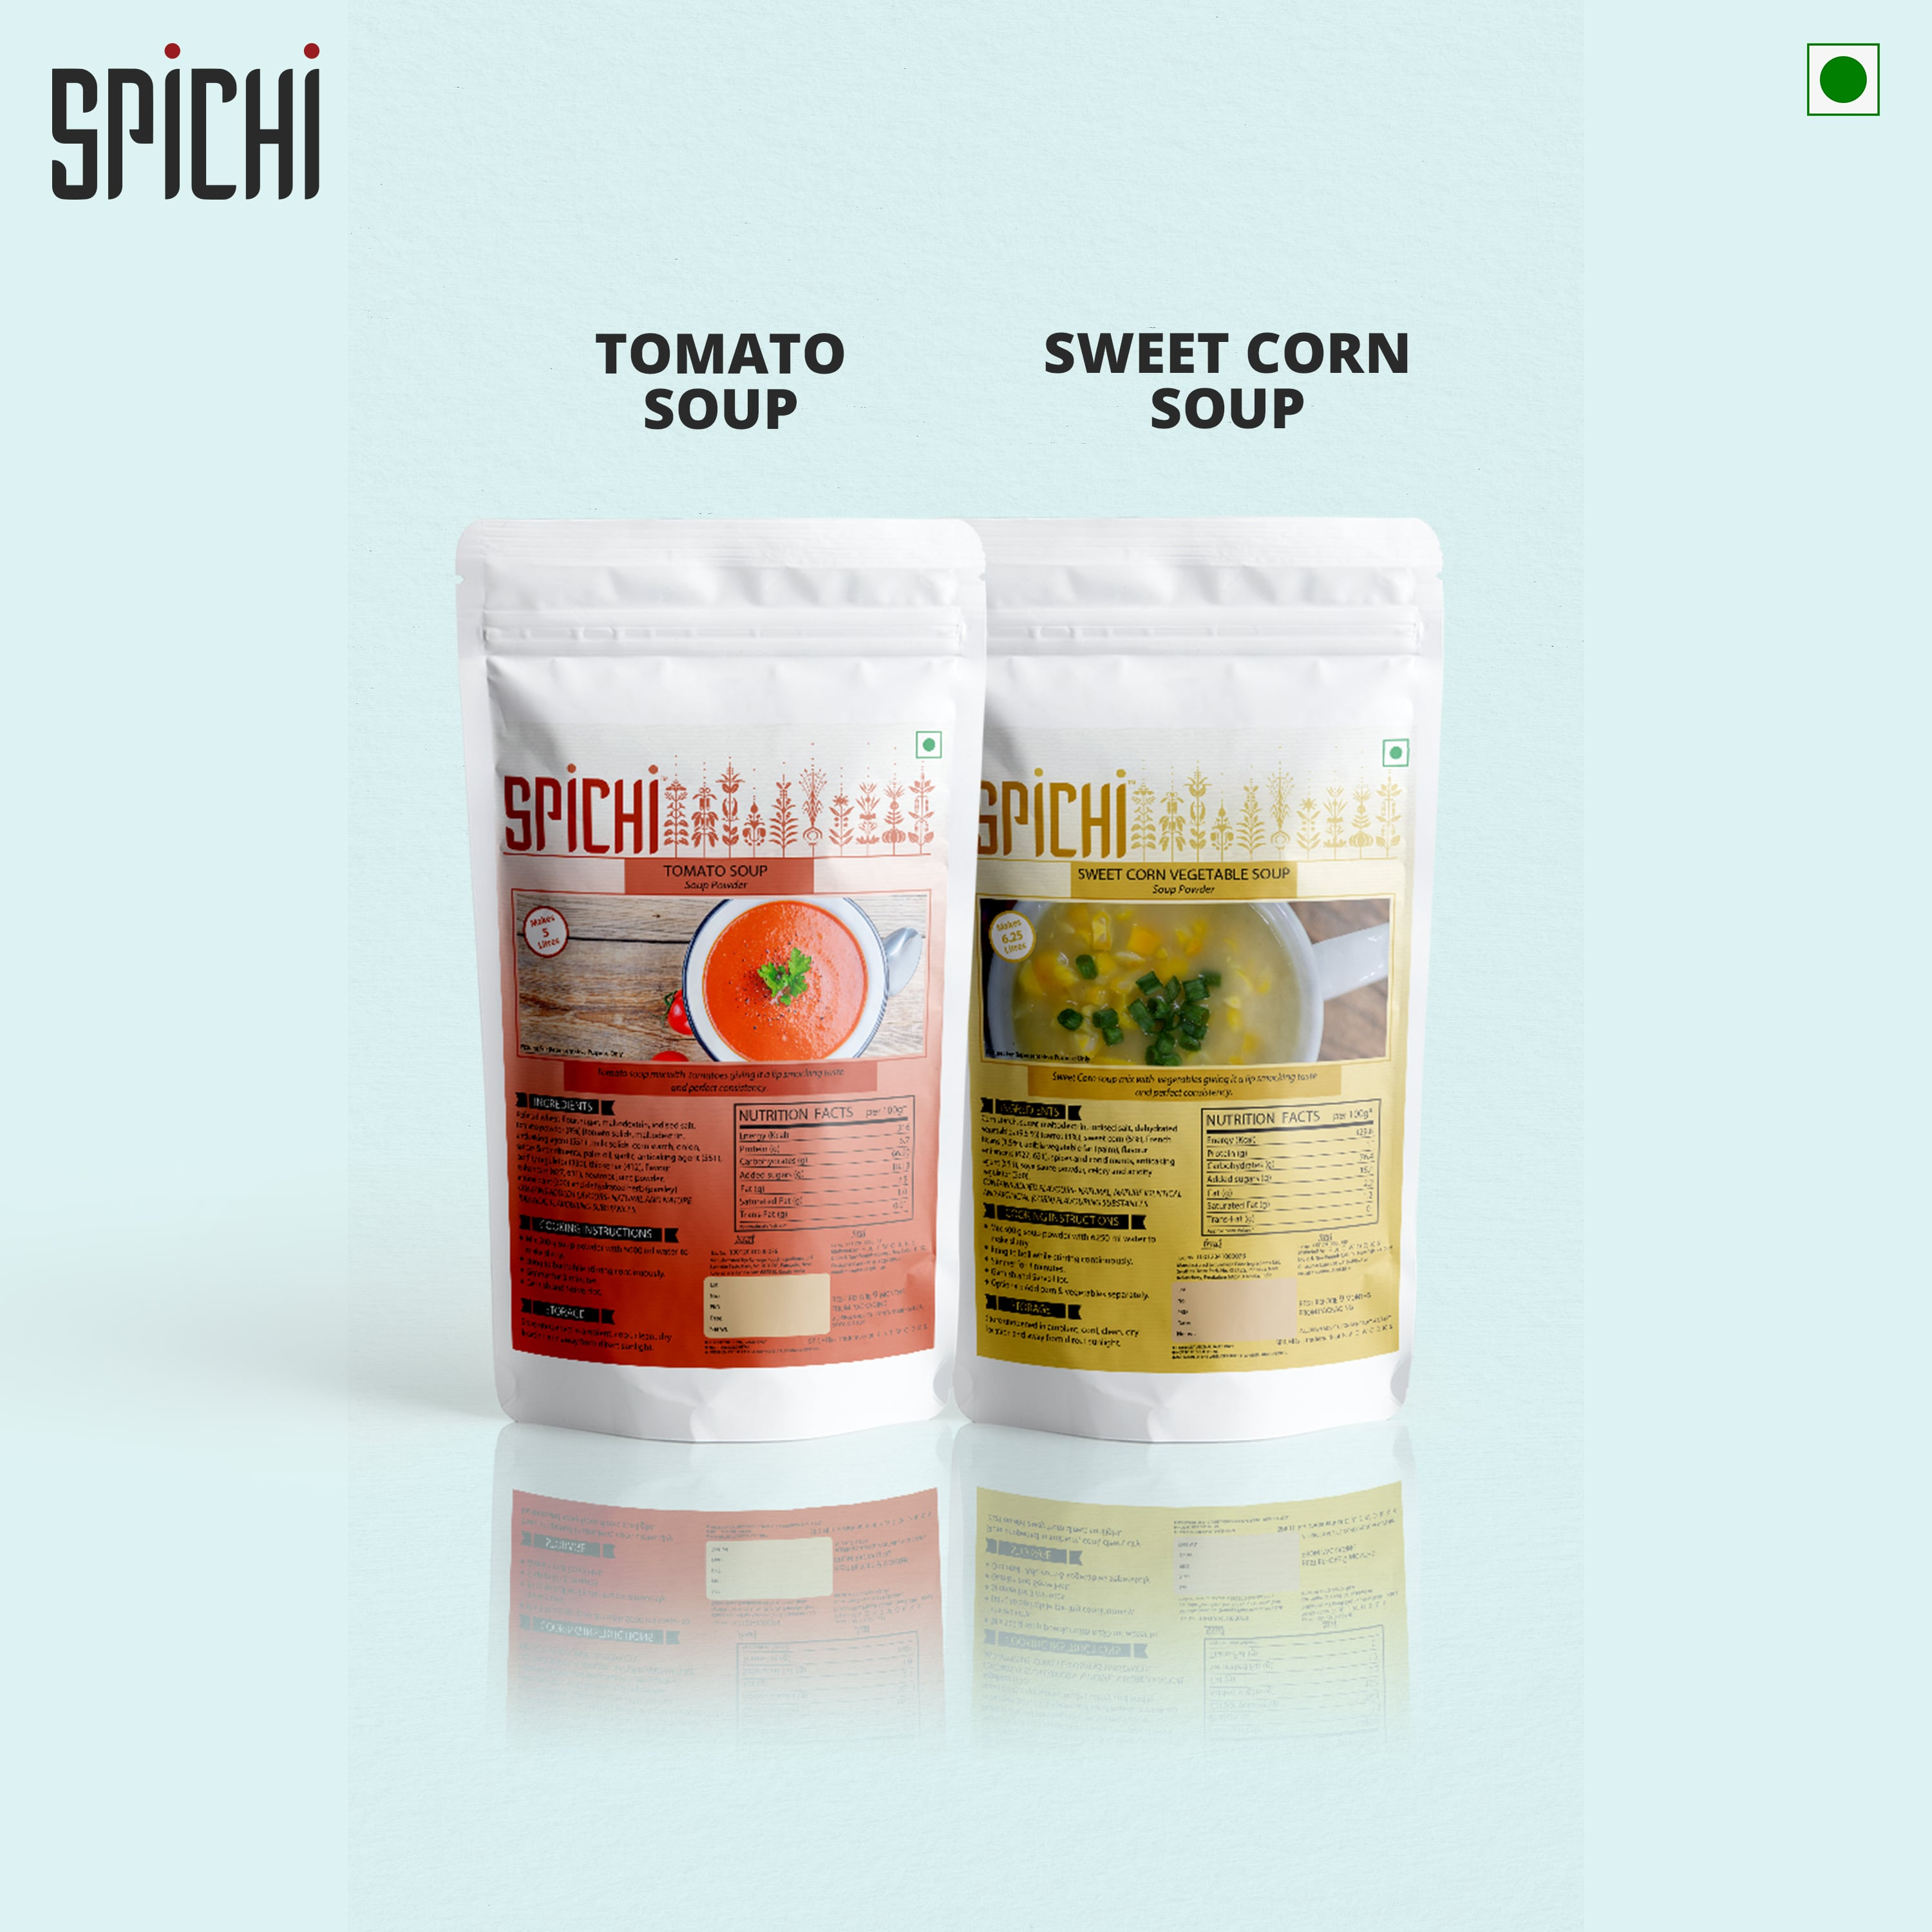 SPICHI TOMATO SOUP AND SWEET CORN VEGETABLE SOUP COMBO